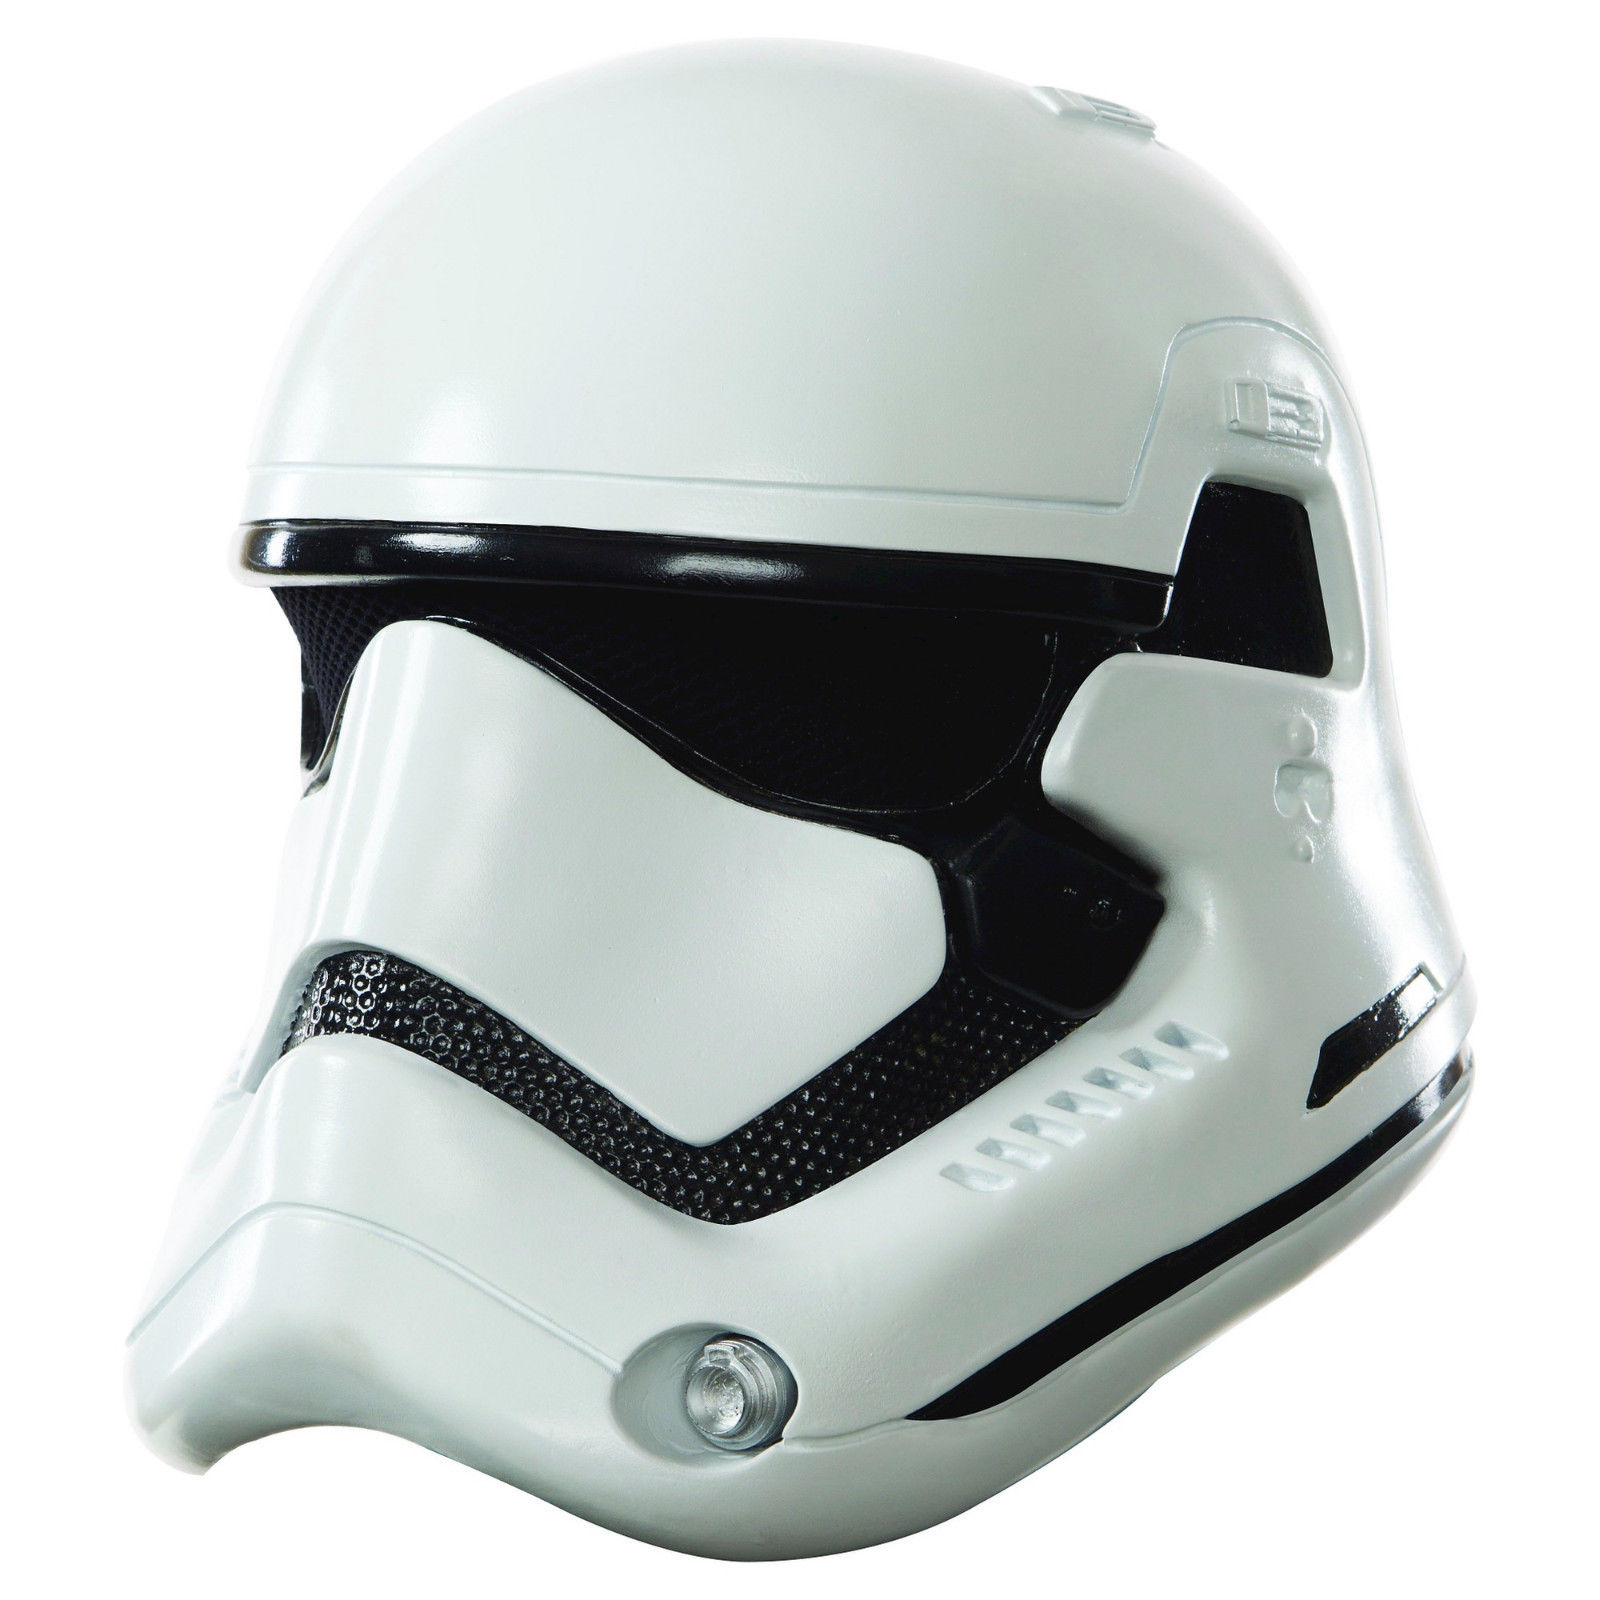 Fotos 360 del casco First Order Stormtrooper (II) #VidePan #FacetheForce #StarWars #Madrid